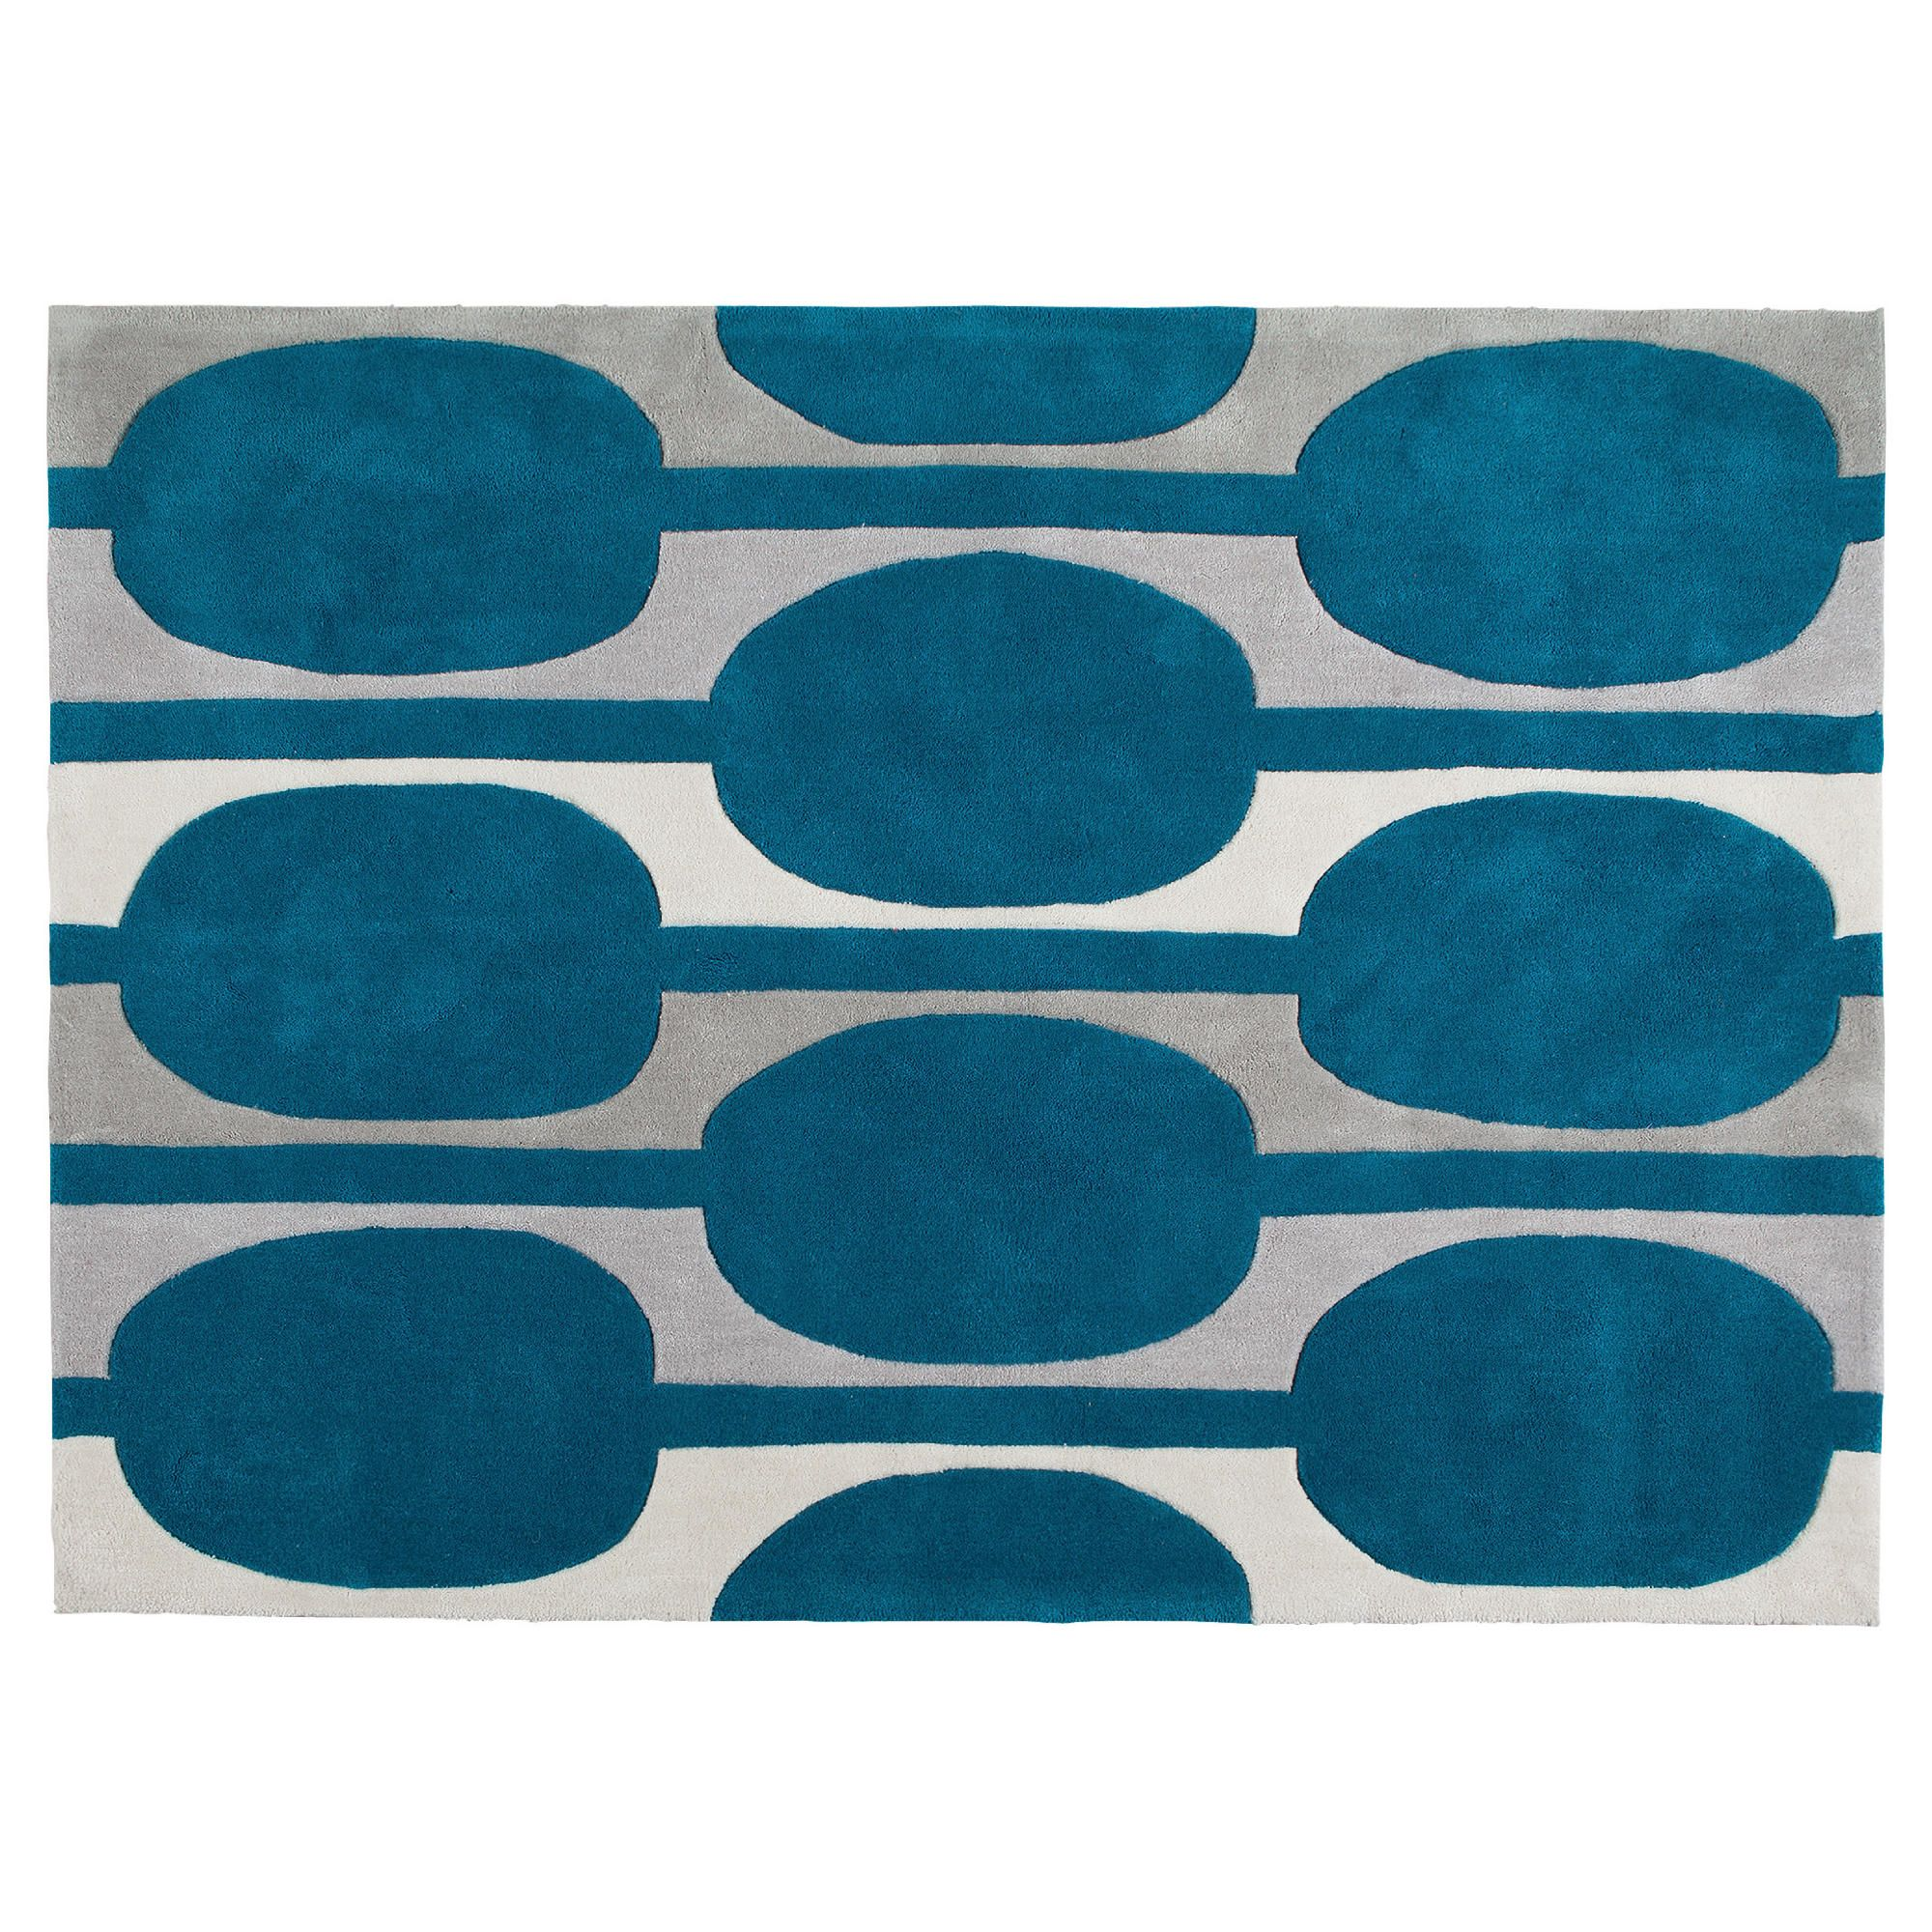 Tesco Rugs Retro Rug Teal 120x170cm Thousands Of Rugs